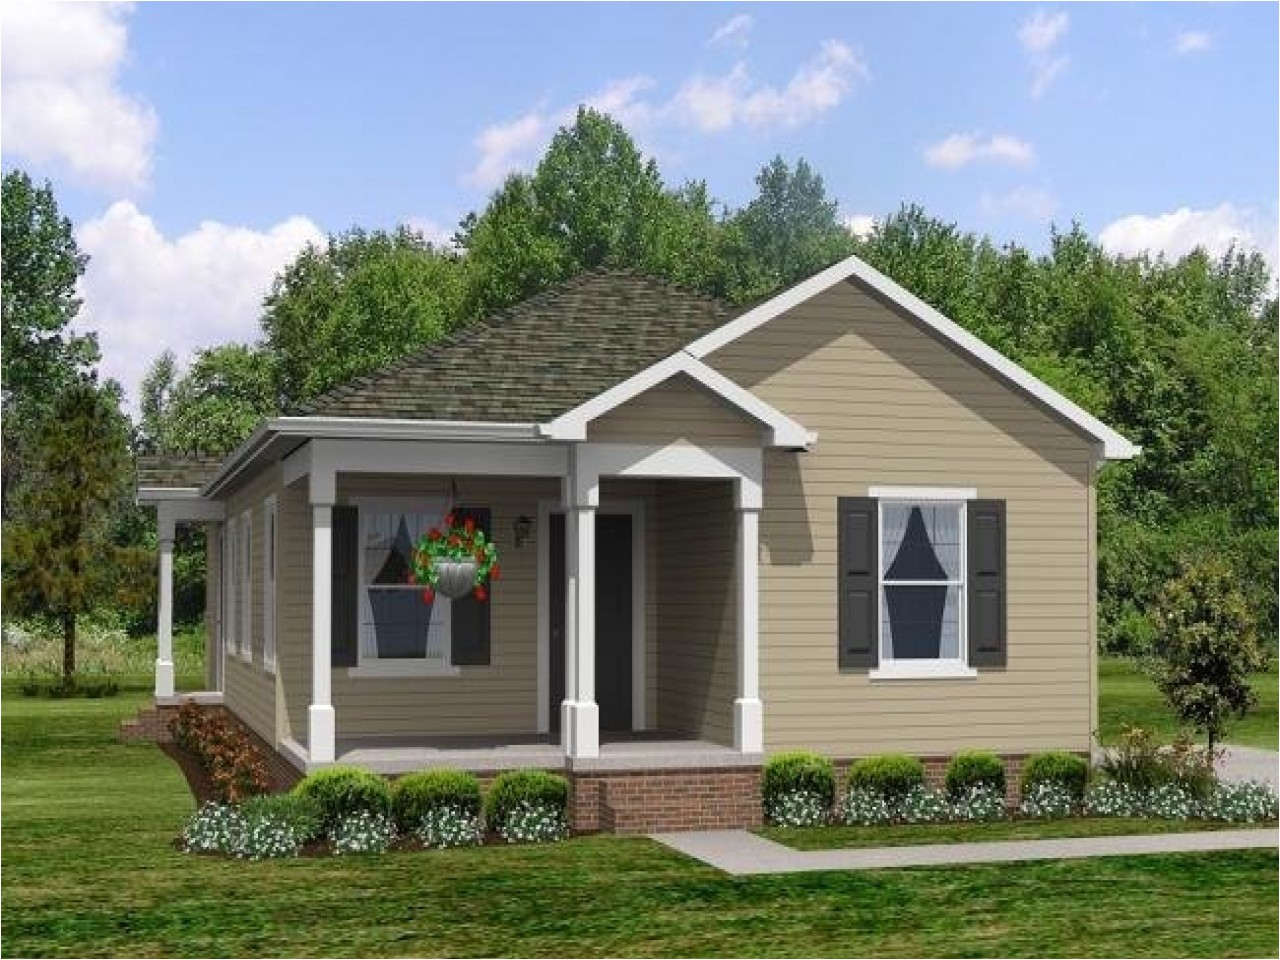 b47c4c96364ba6ec simple small house floor plans cute small house plan